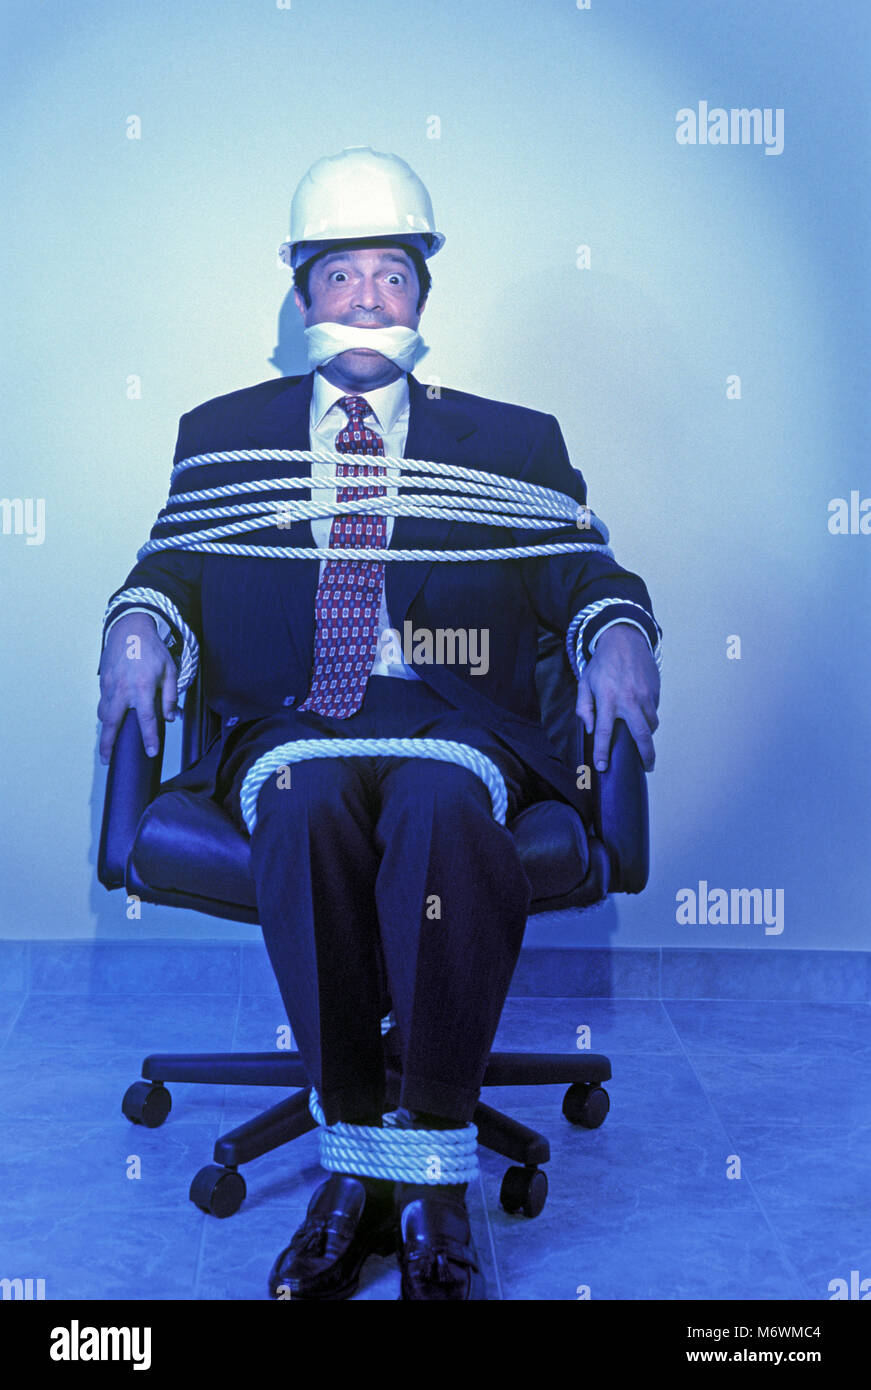 1998 HISTORICAL PORTRAIT CAUCASIAN MALE MIDDLE AGED BUSINESS MAN TIED UP TO CHAIR - Stock Image